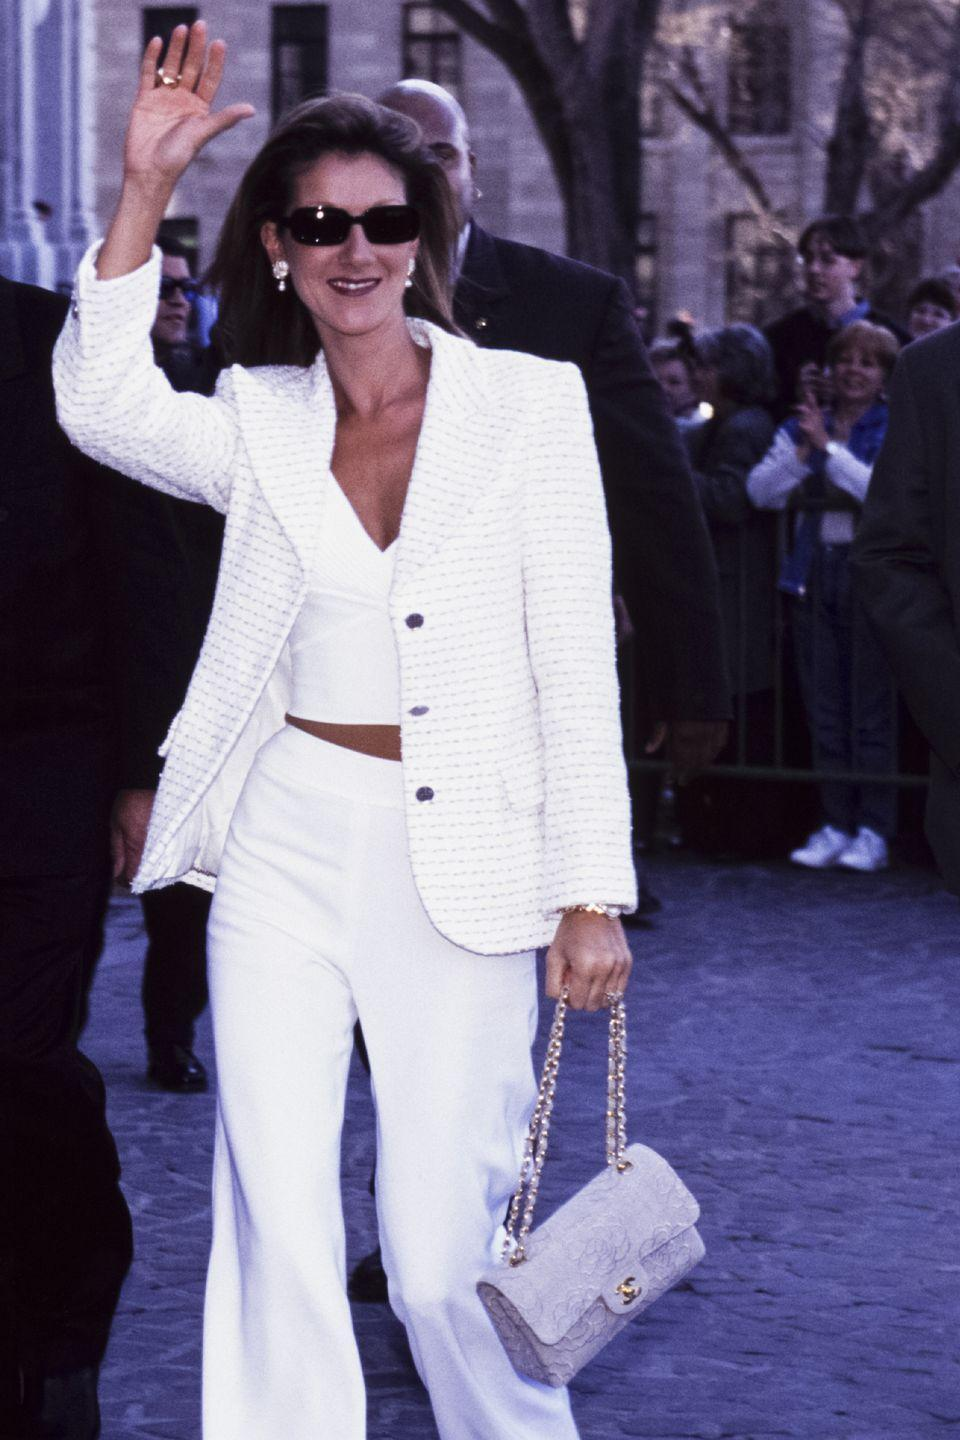 <p>While out in Québec, the singer looked incredibly chic in a white suit and crop top. She accessorized the look with a matching Chanel bag and pearl earrings. </p>